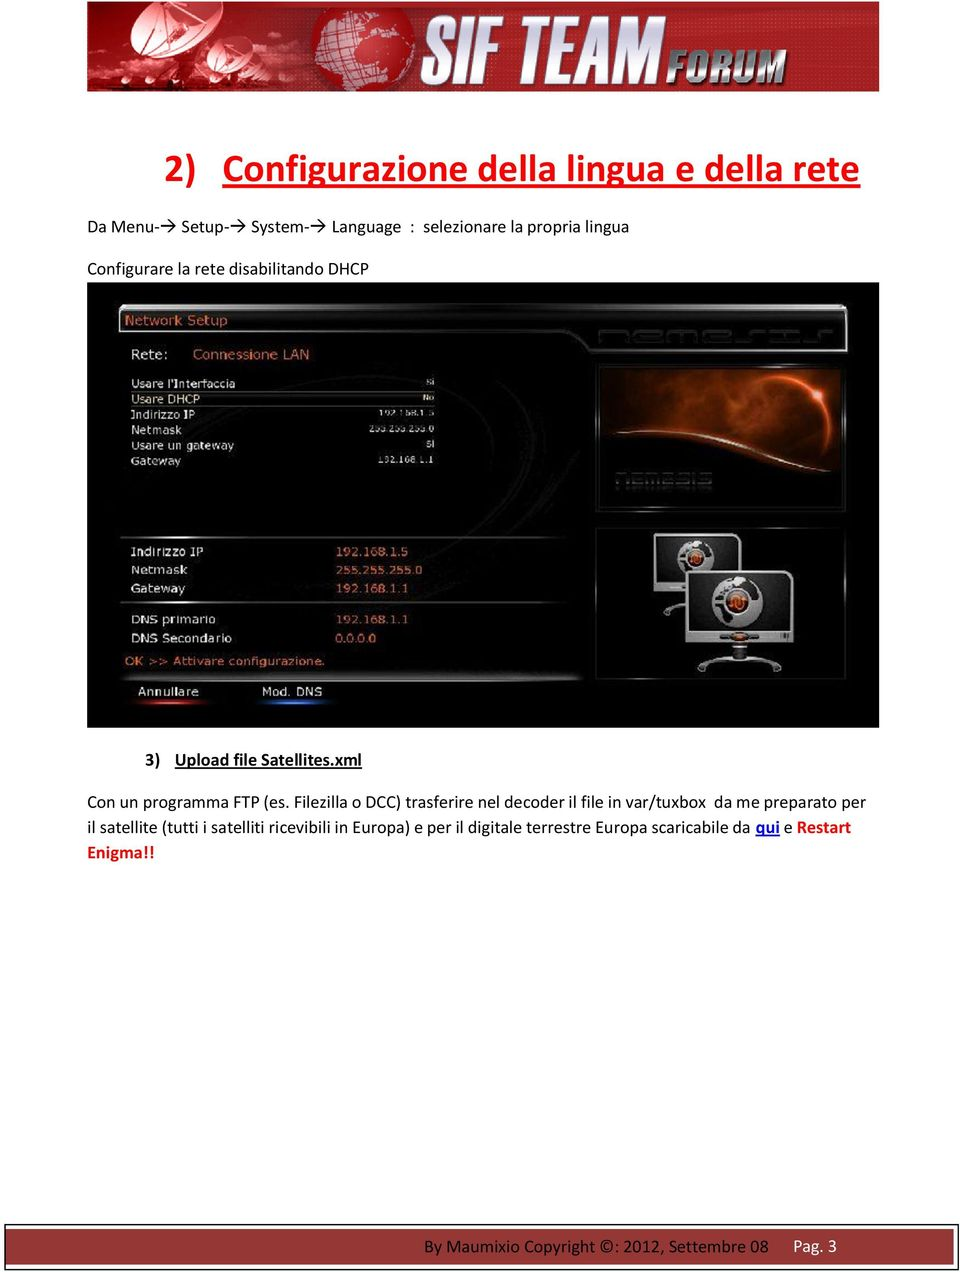 Filezilla o DCC) trasferire nel decoder il file in var/tuxbox da me preparato per il satellite (tutti i satelliti